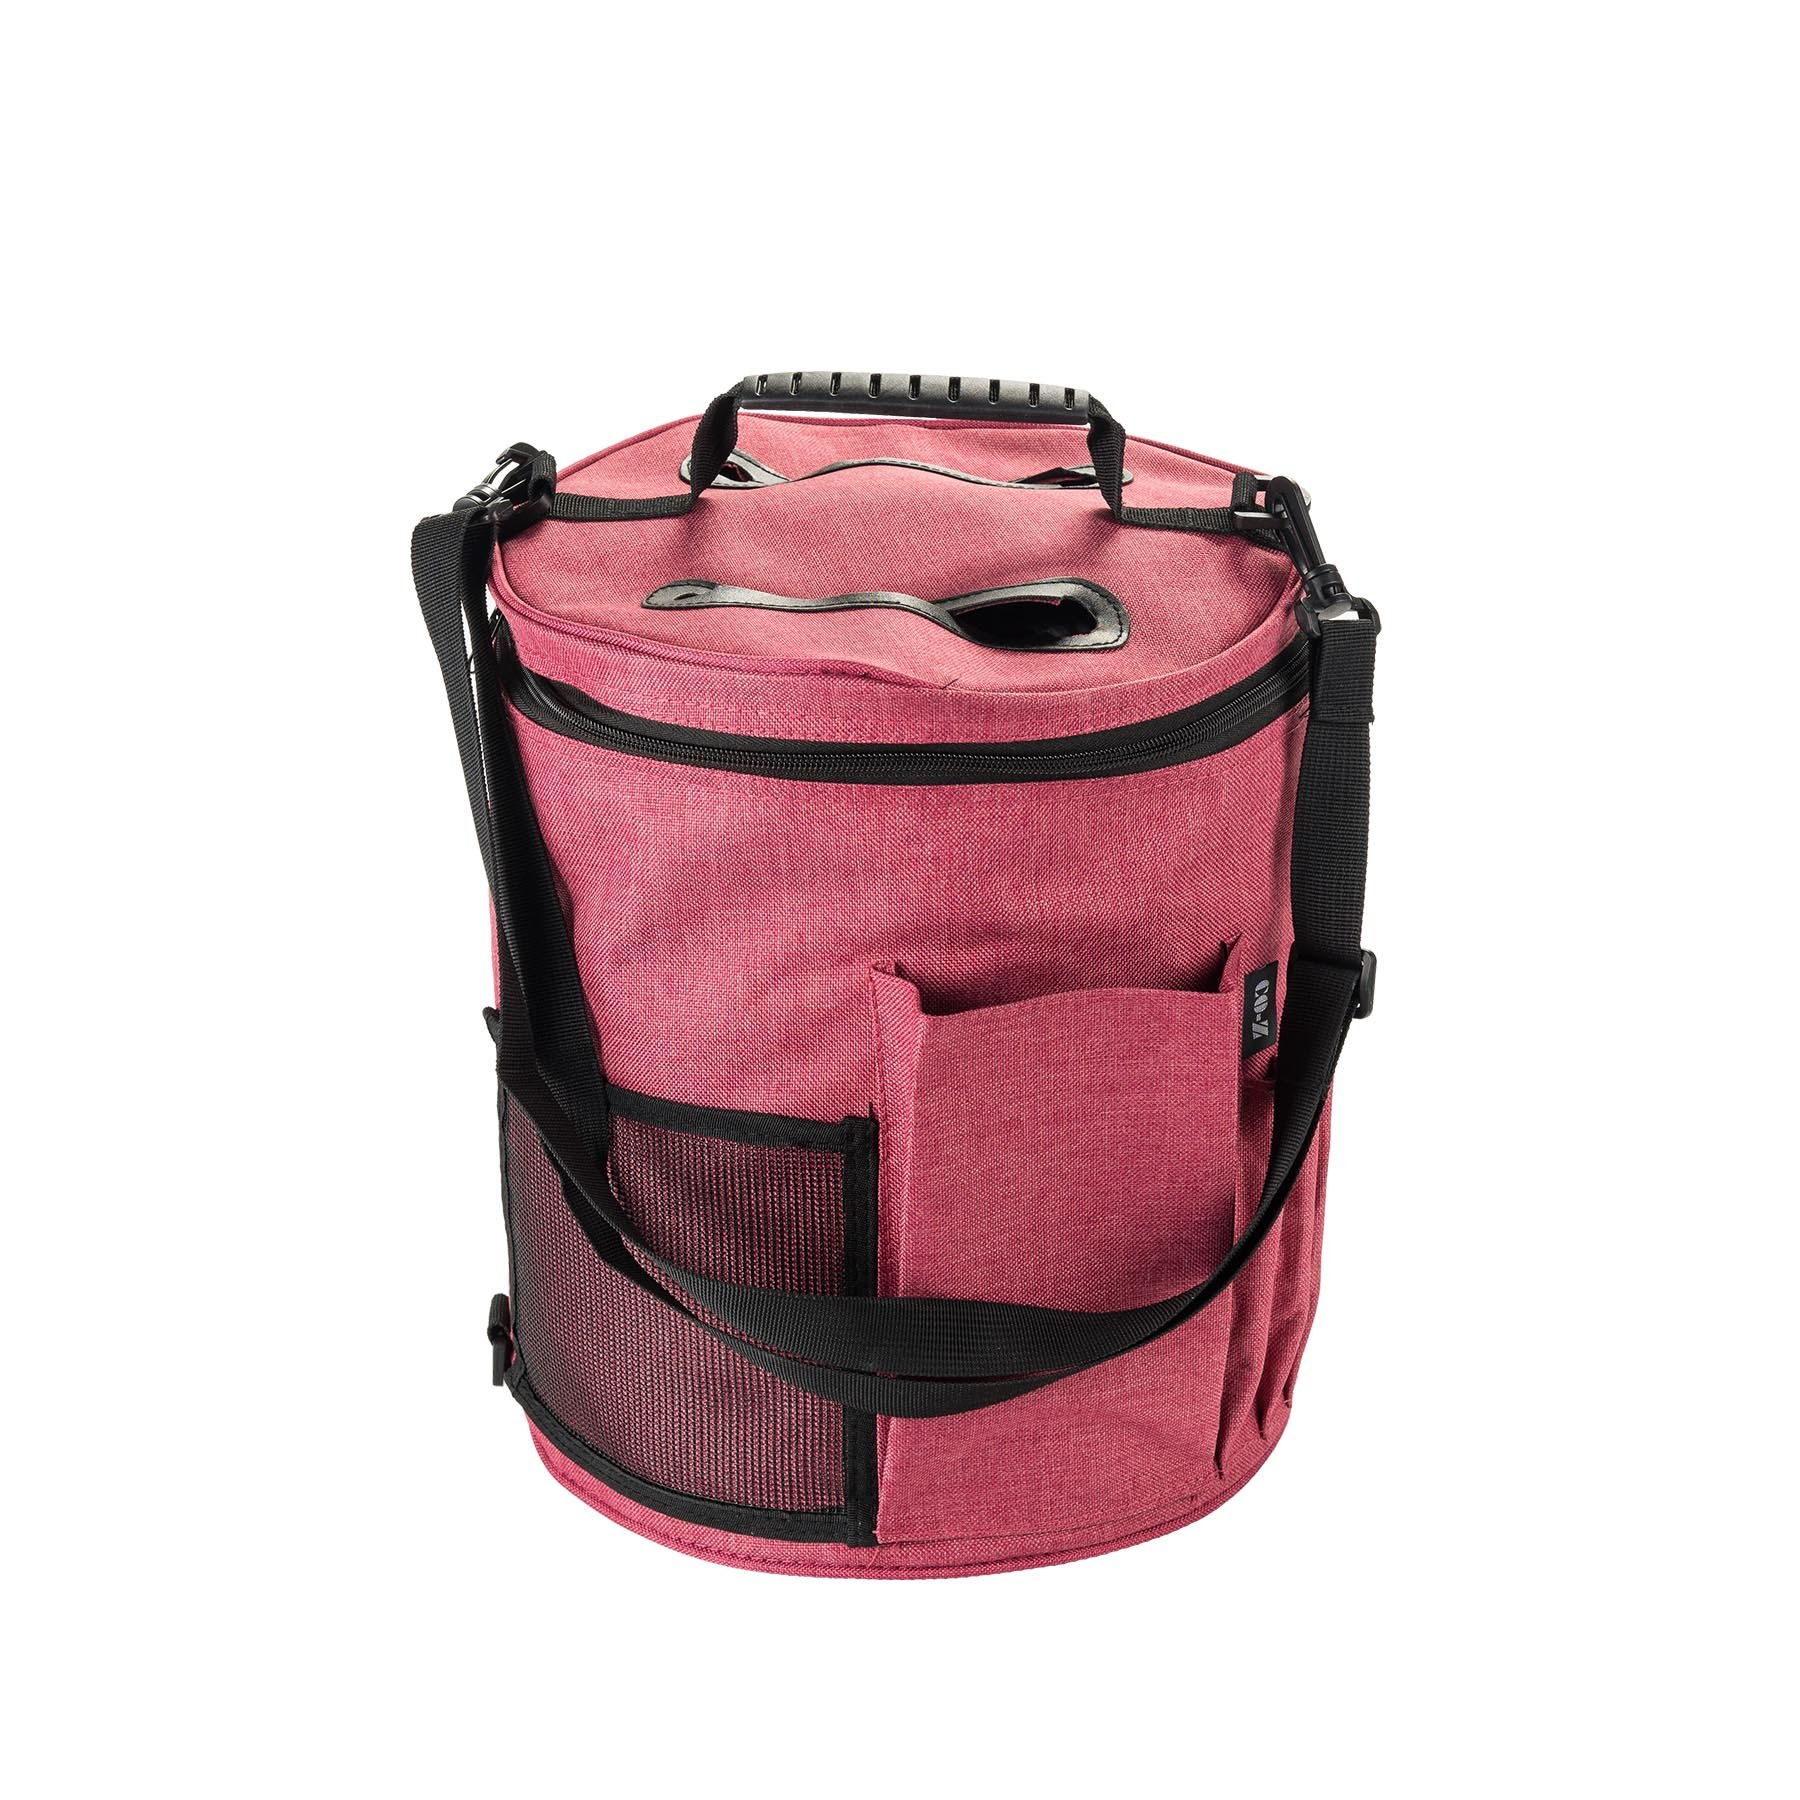 CO-Z Organizer Bag for Knitting Projects, Large Tote Bag for Storage Yarn Supplies, Organizer Tote for Weave Tools Crochet Accessories Needles/Hooks, Lightweight Holder with Adjustable Strap